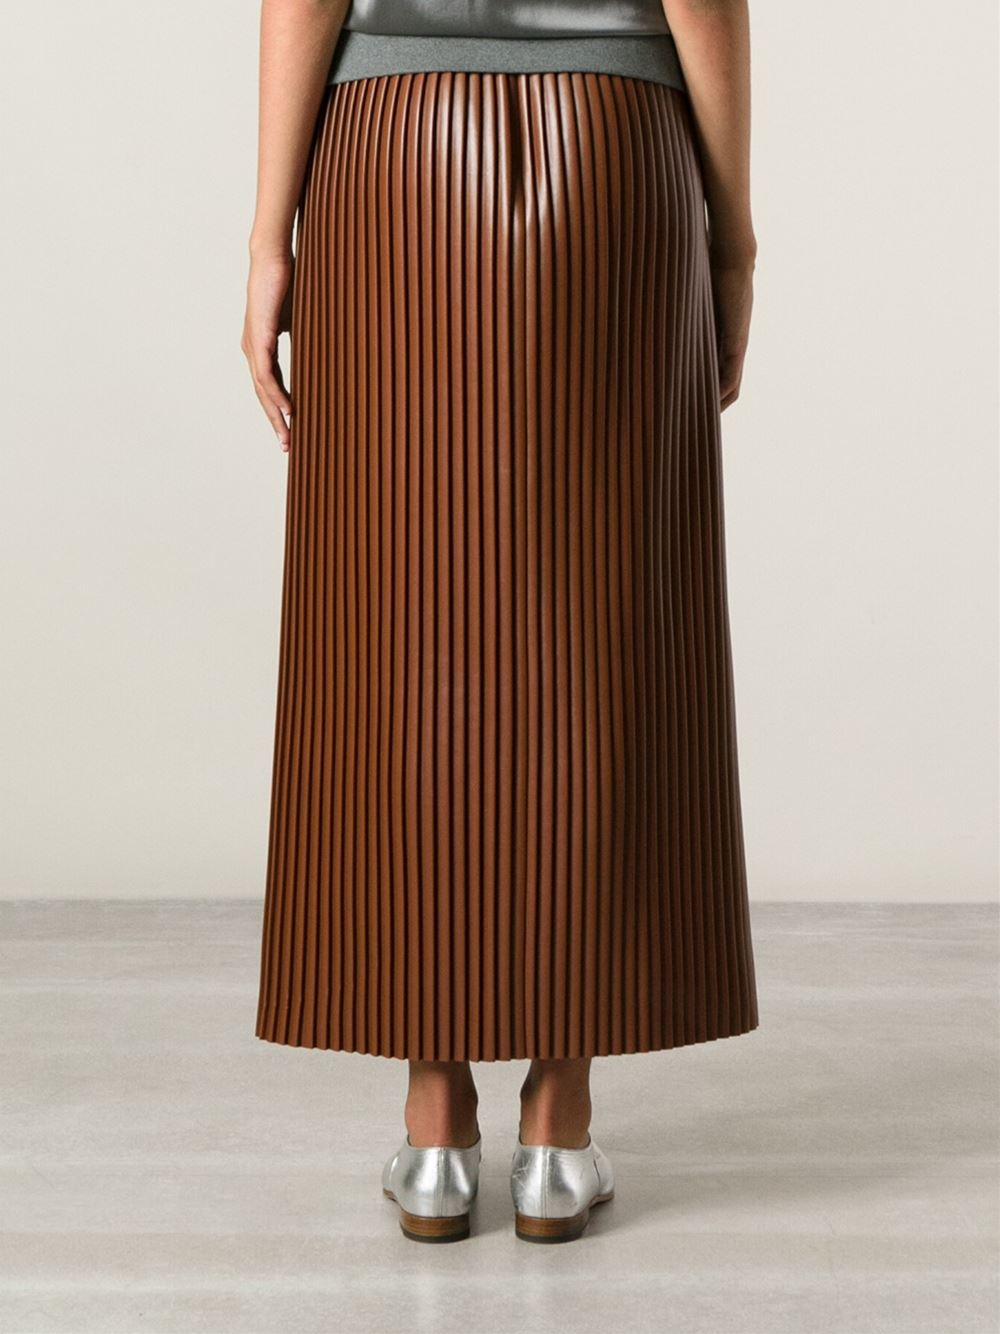 Msgm Long Pleated Skirt in Brown | Lyst